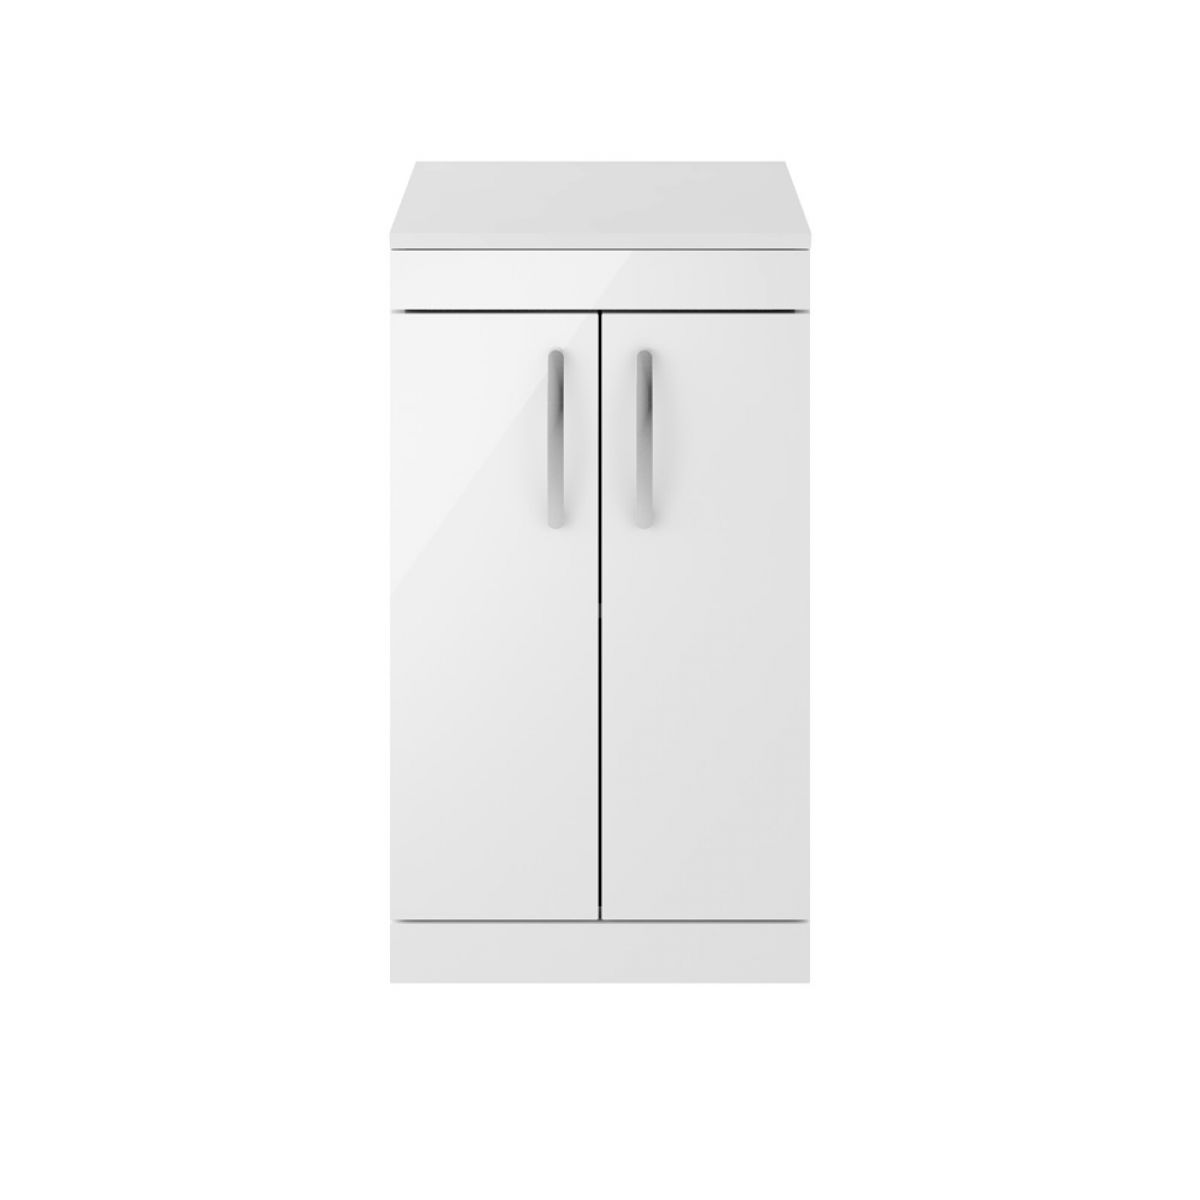 Premier Athena Gloss White 2 Door Floor Standing Vanity Unit 500mm with Worktop